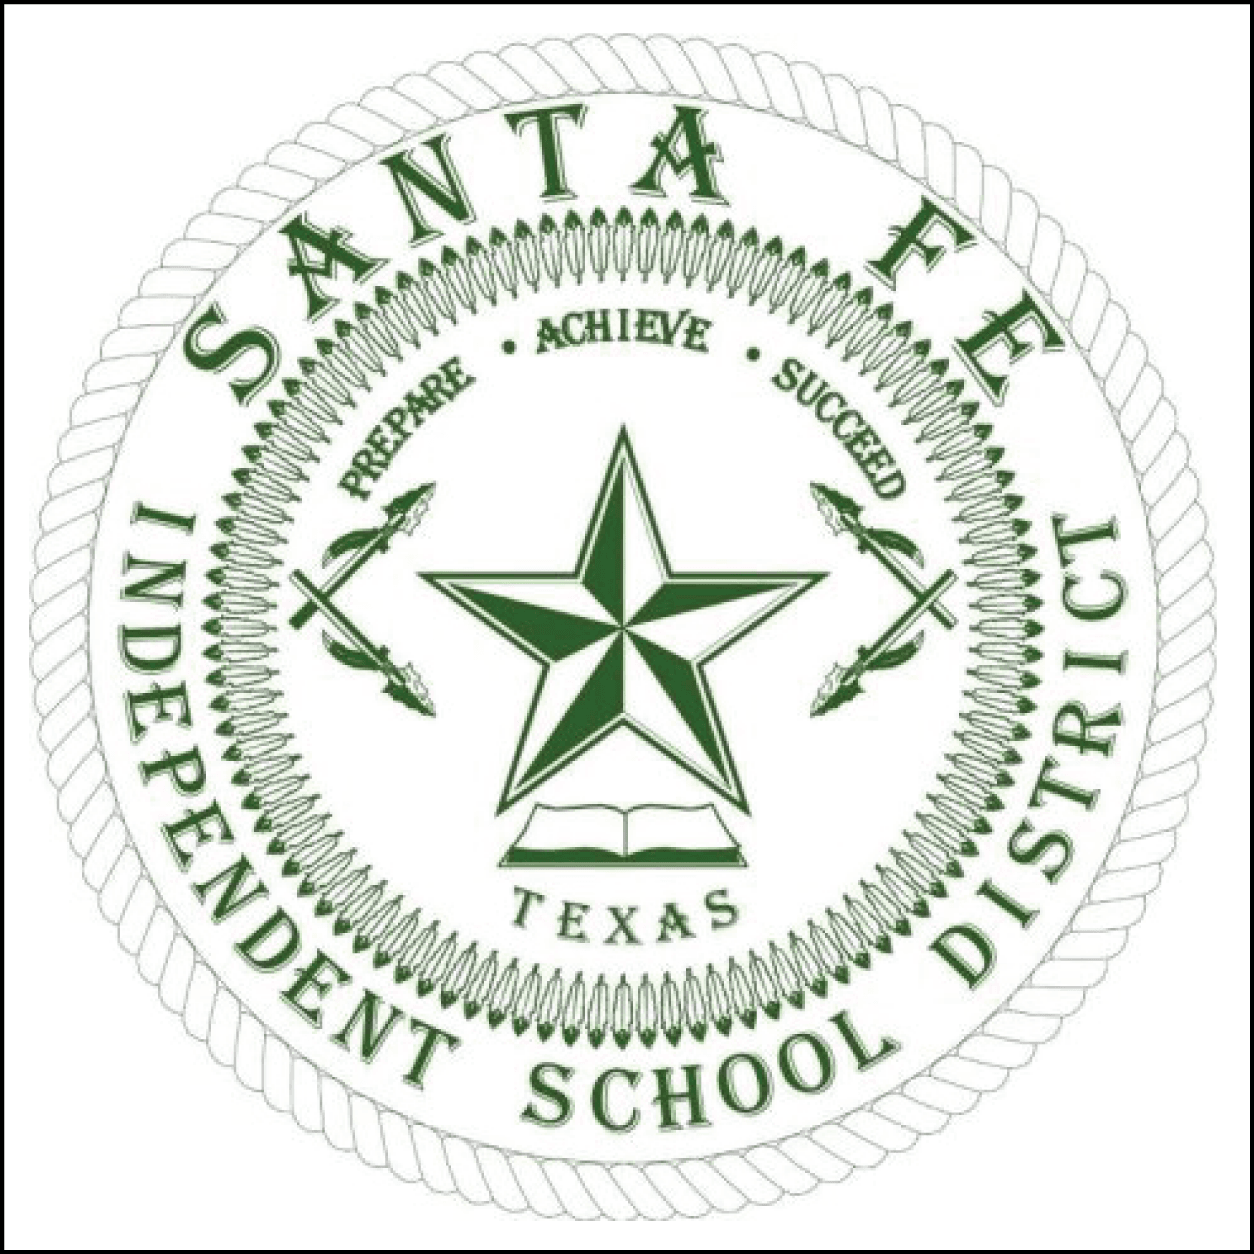 school districts_SFISD logo